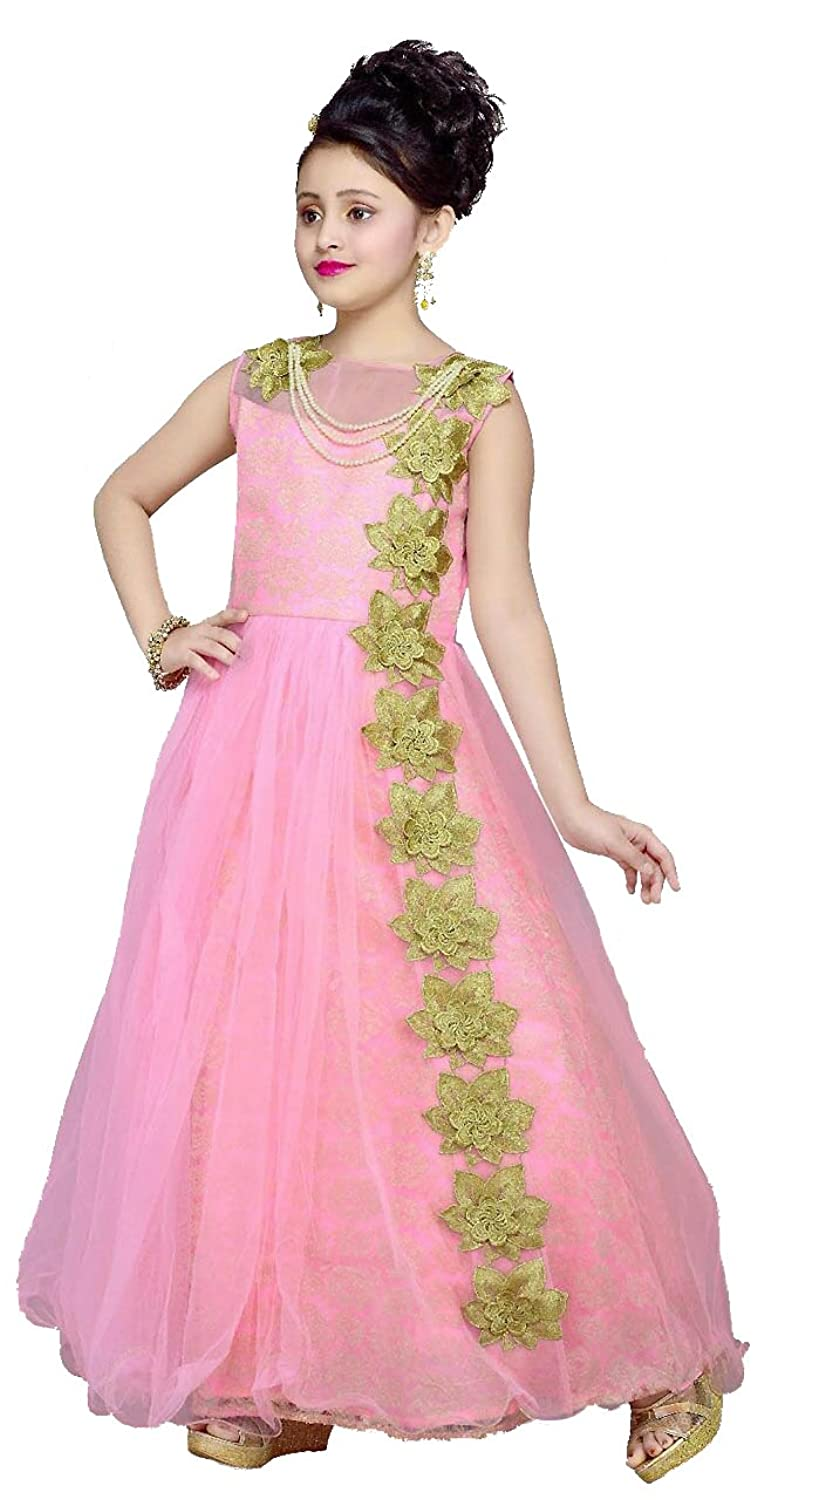 New Arrival Designer Cute Light Pink Gown for Girls: Amazon.in ...